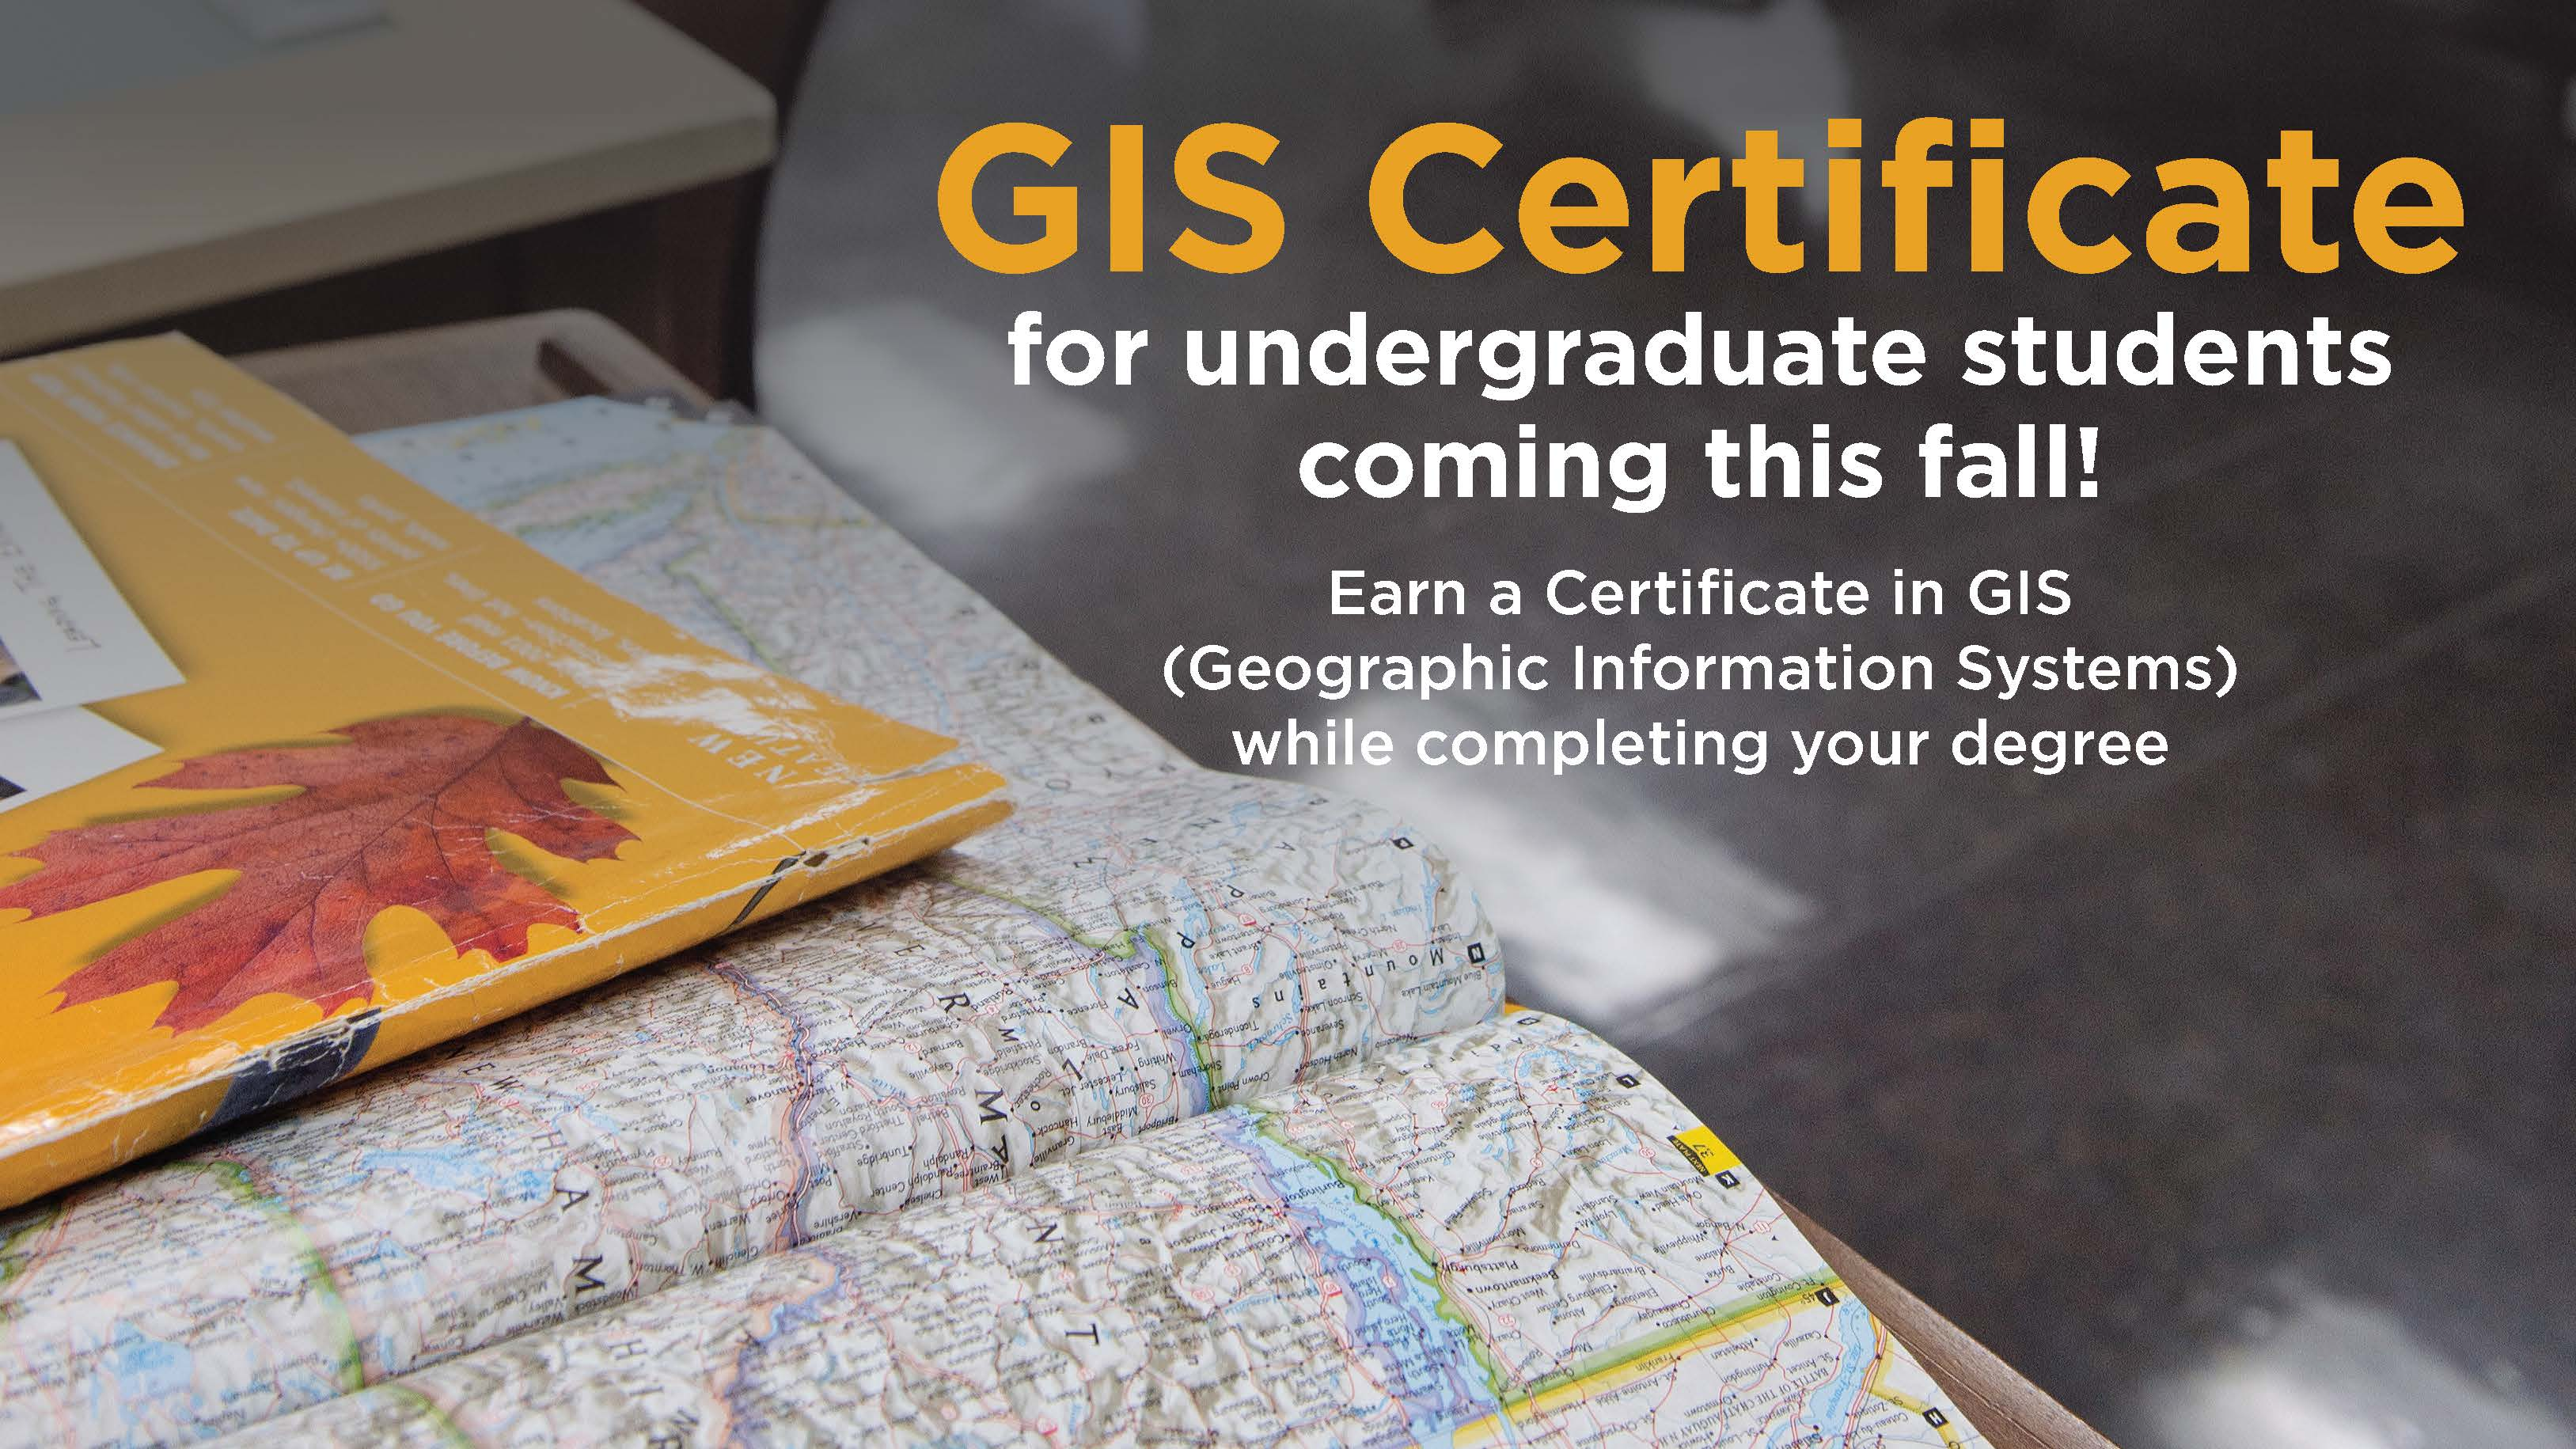 GIS Certificate for Undergrads